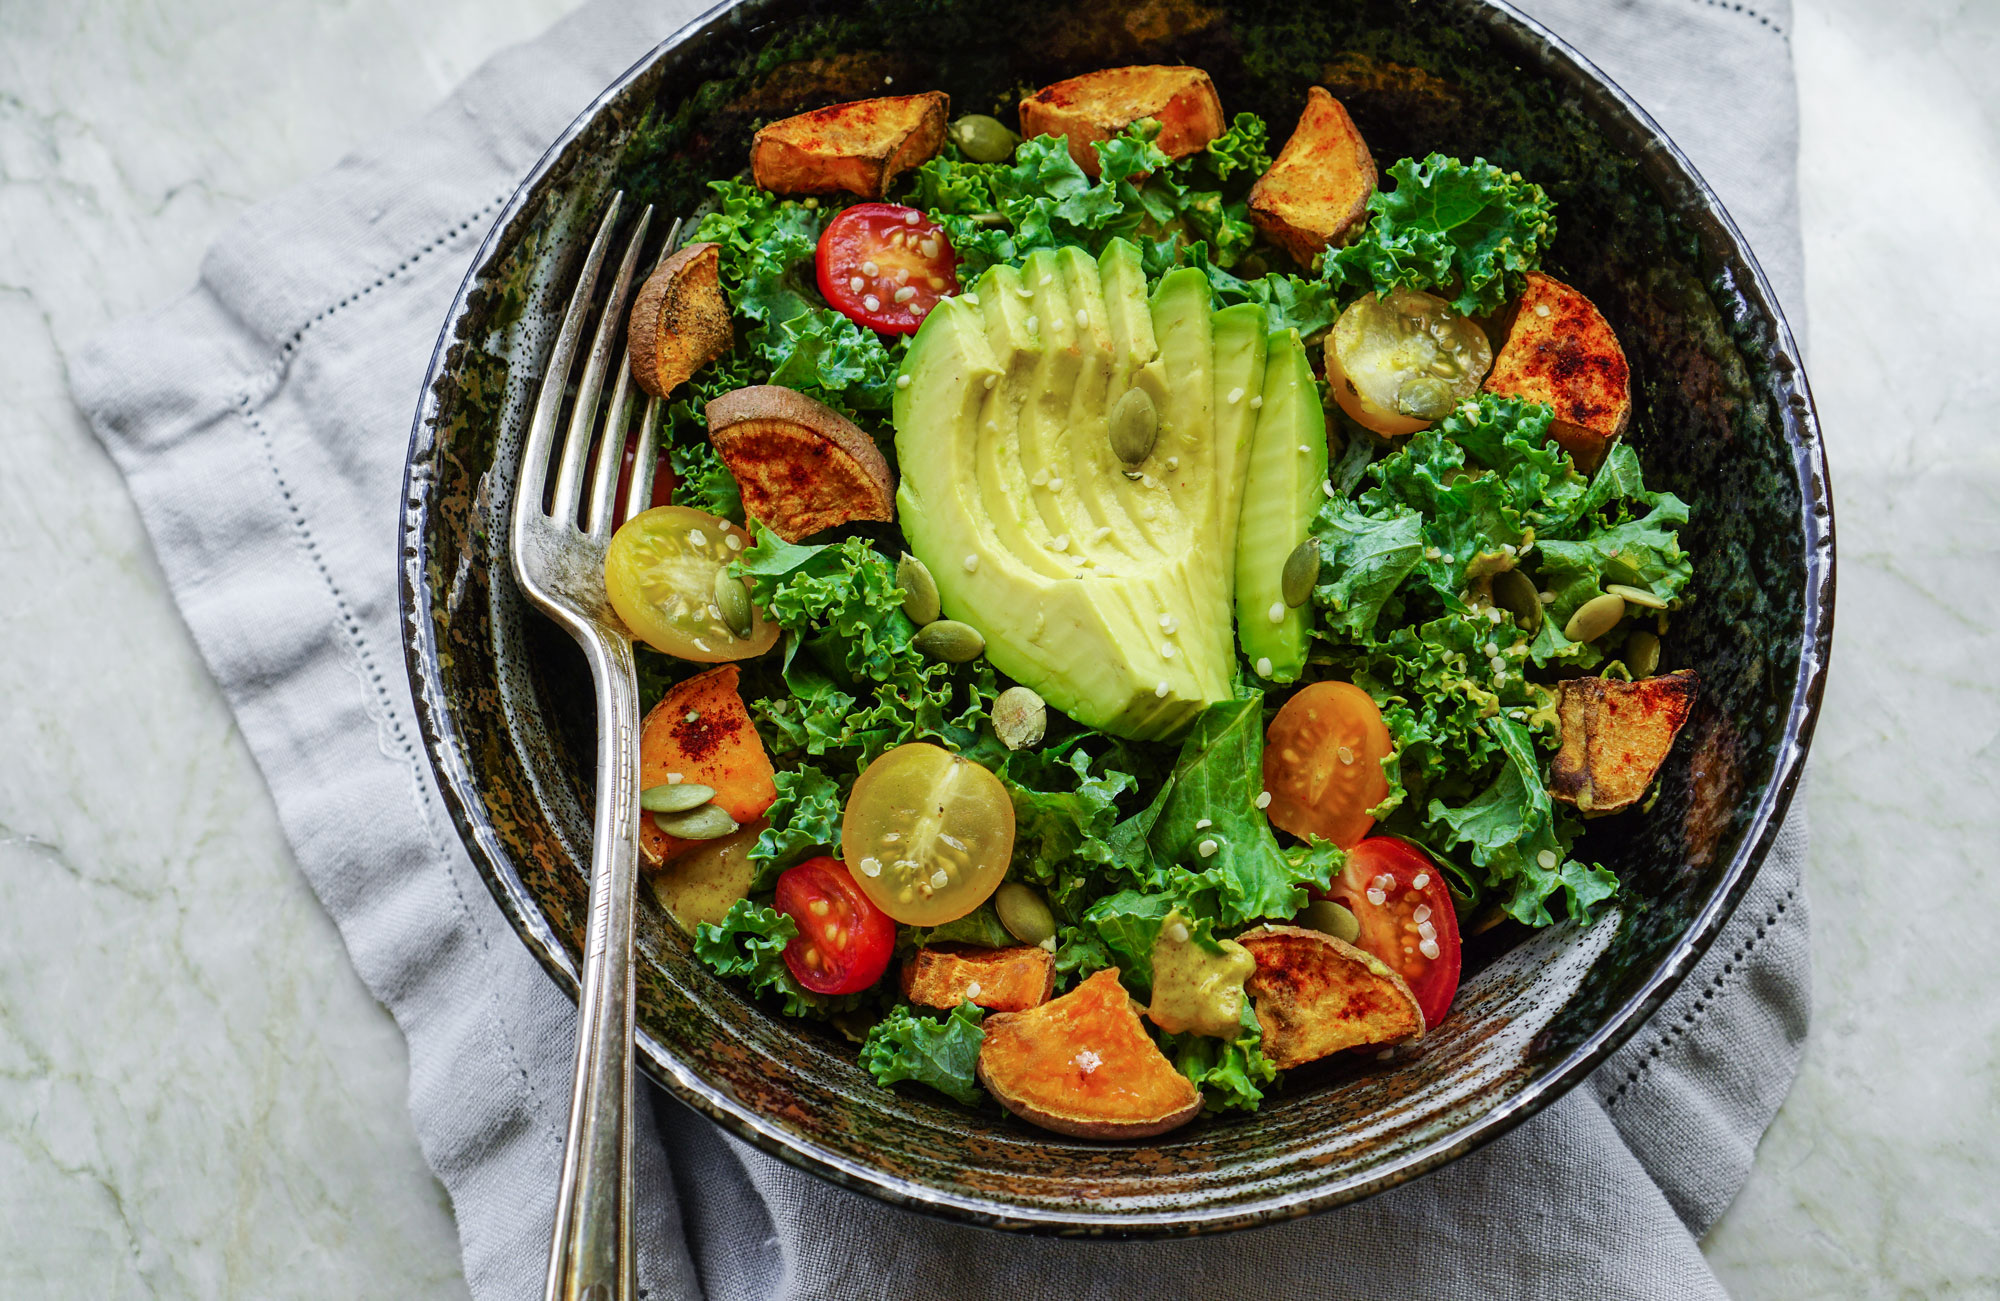 paleo diet for chronic pain, Can the Paleo Diet Help Reduce Pain?